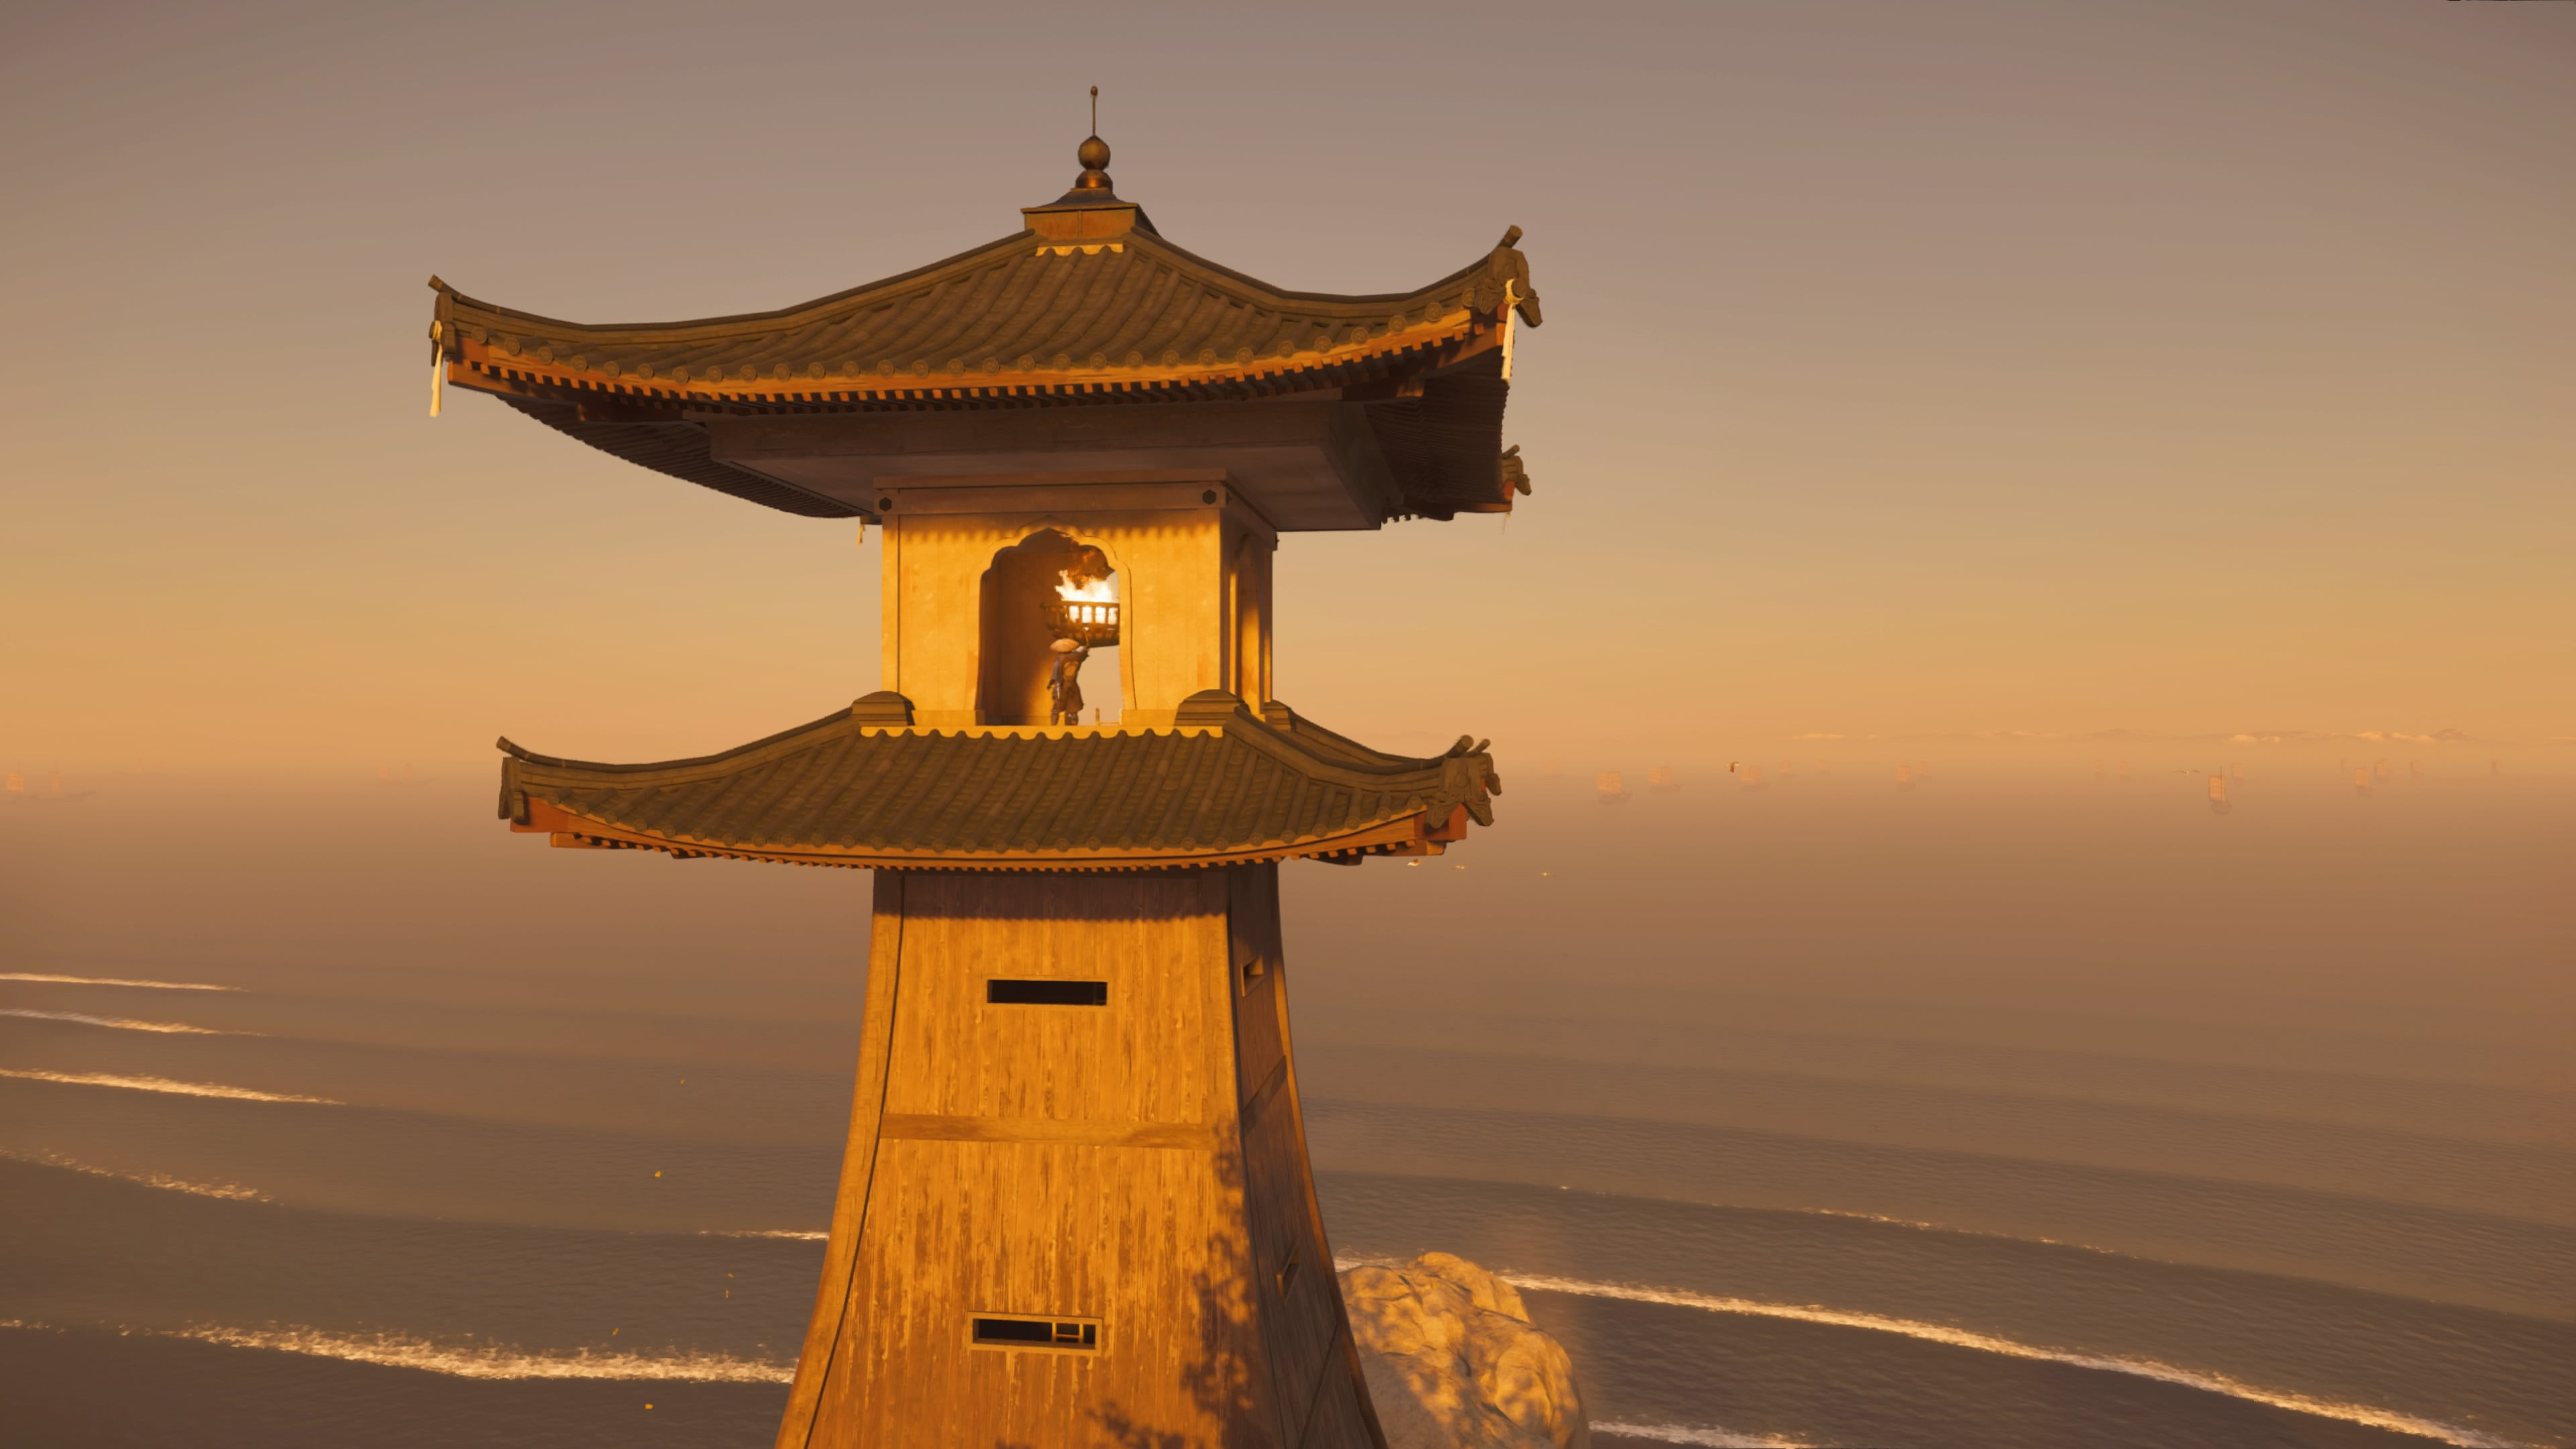 A lighthouse in Ghost of Tsushima